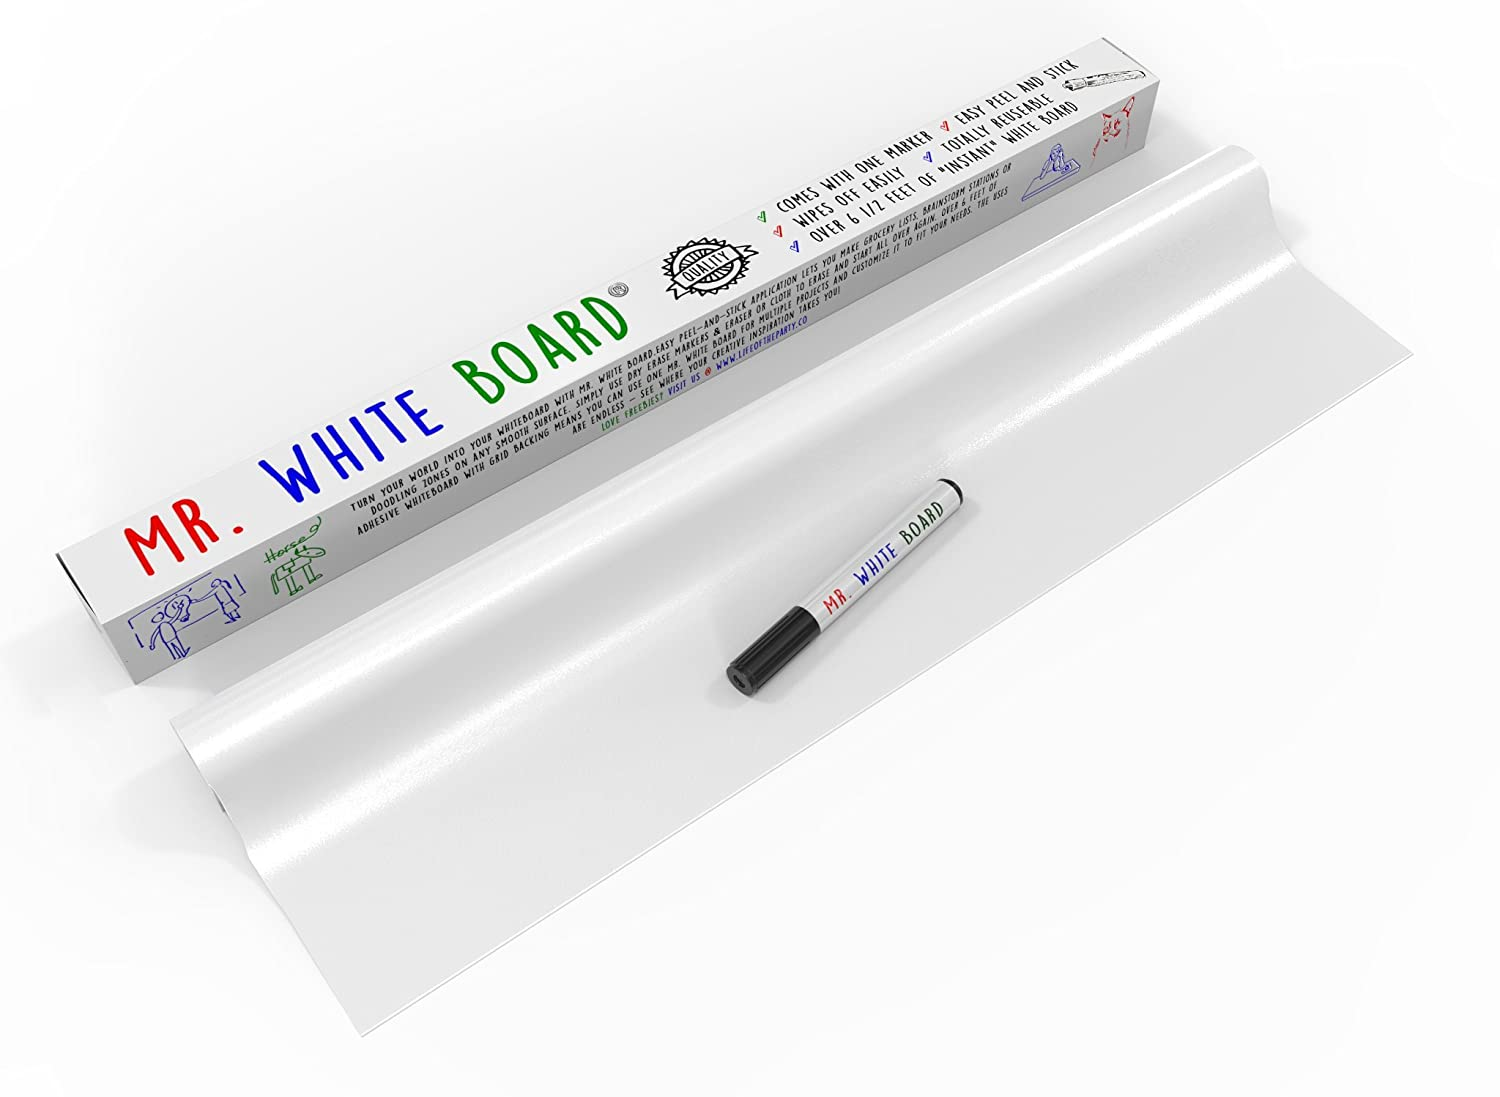 (#1 Rated Dry Erase Wall Decal) Over 6 Ft of Adhesive Whiteboard Turns Any Surface Into Monthly White Board Calendar or Weekly List - Easier Than White Board Paint, Comes With FREE Dry Erase Marker